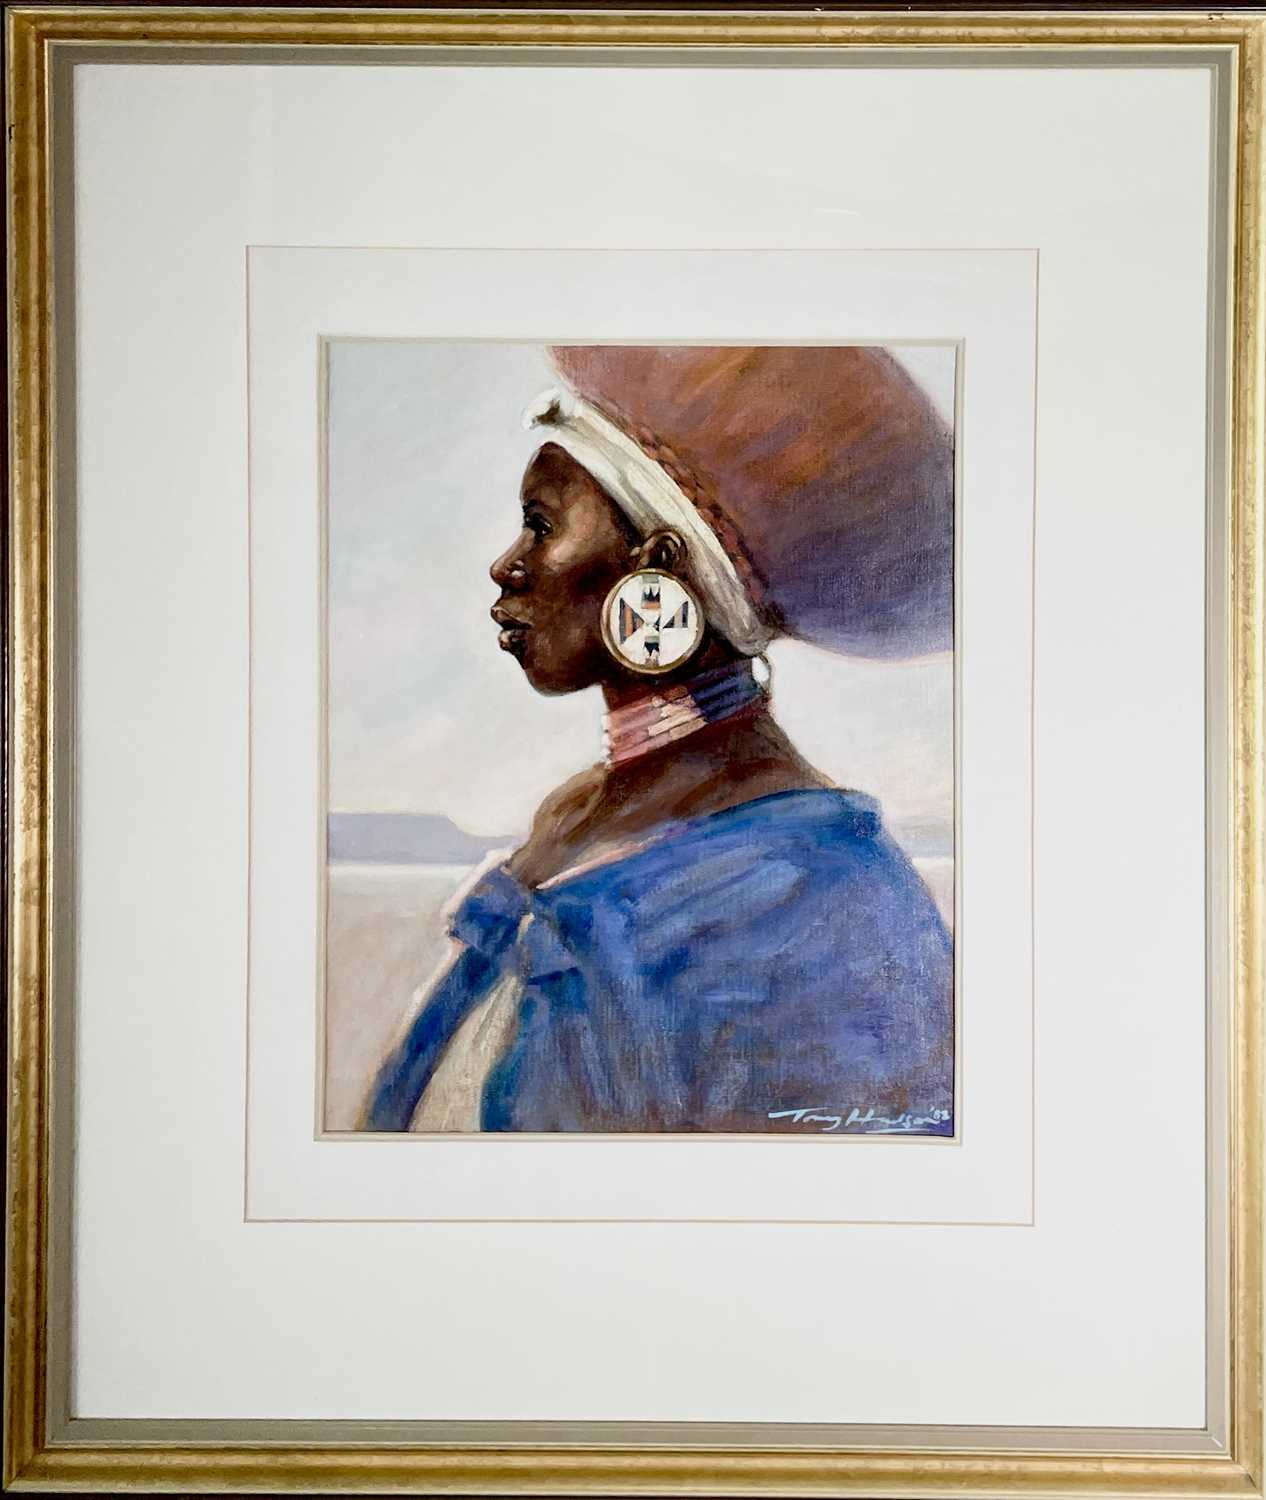 Anthony J. HUDSON (1937-1989)Zulu Woman Oil on board Signed and dated '8855 x 44cmCondition - Image 2 of 3